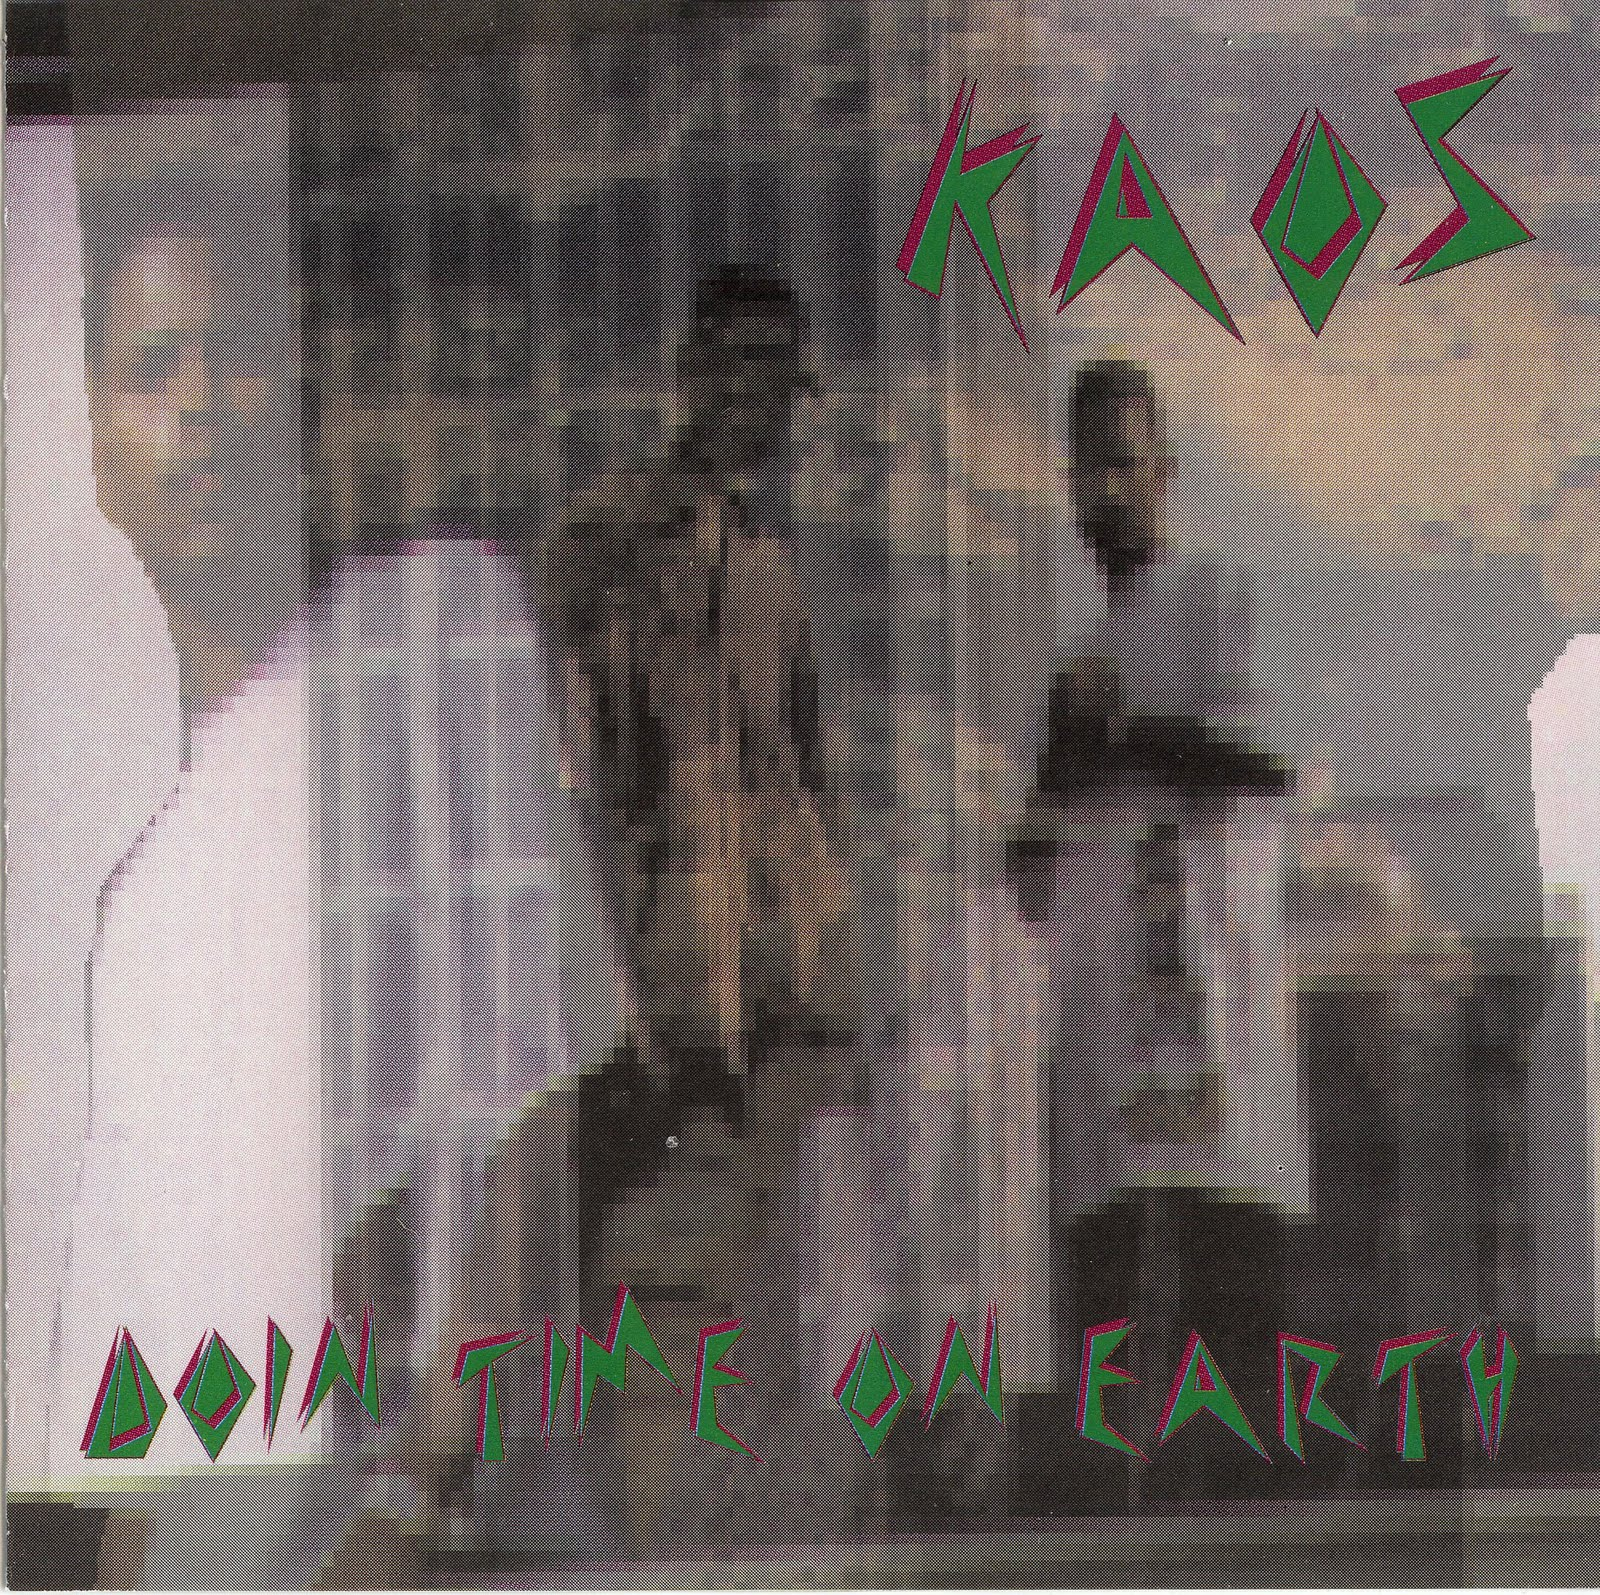 Kaos (13) - Life Of Crime / What Goes Up Must Come Down